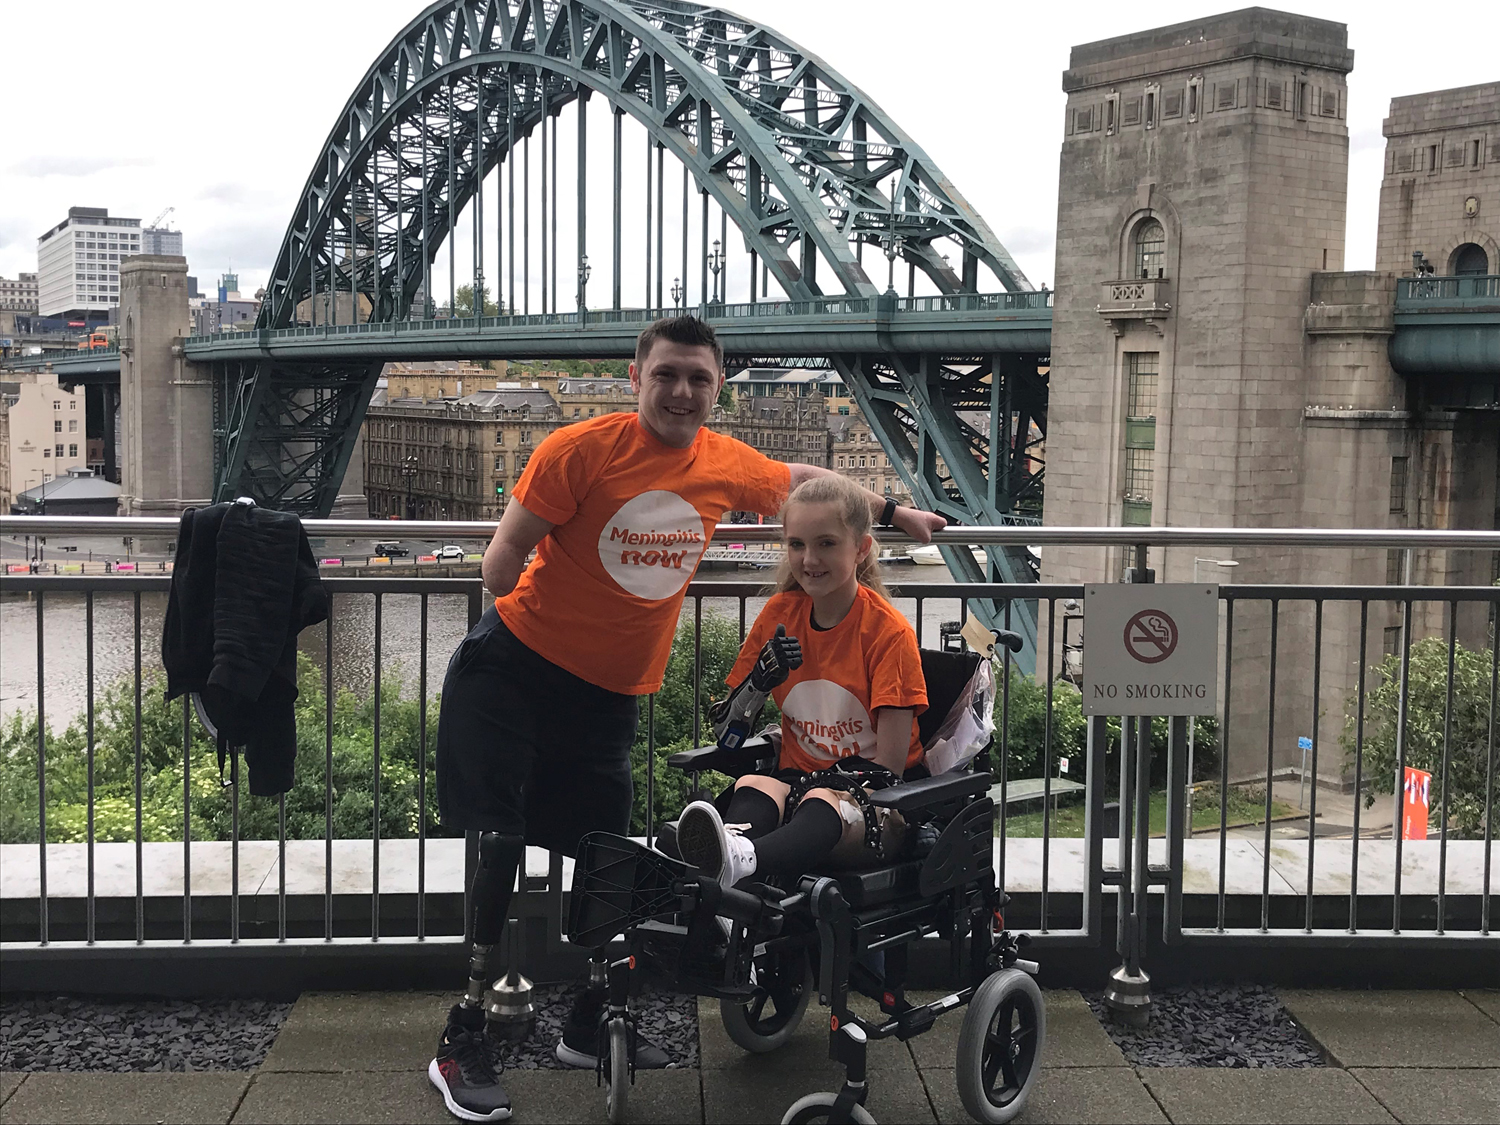 North East Meningitis Survivors Join Forces to Raise Awareness